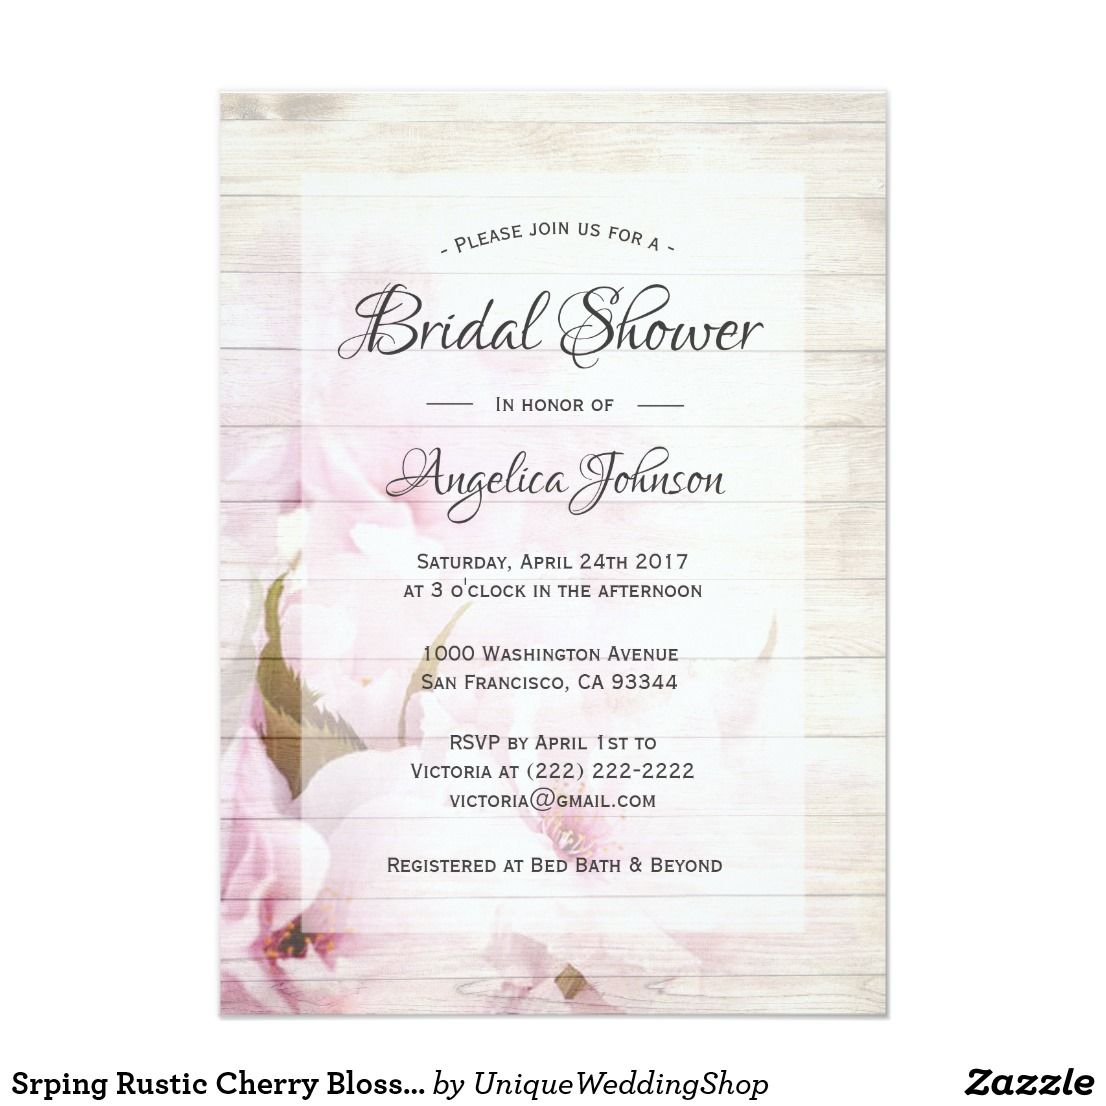 Spring Rustic Cherry Blossoms Floral Bridal Shower Card | Bridal ...